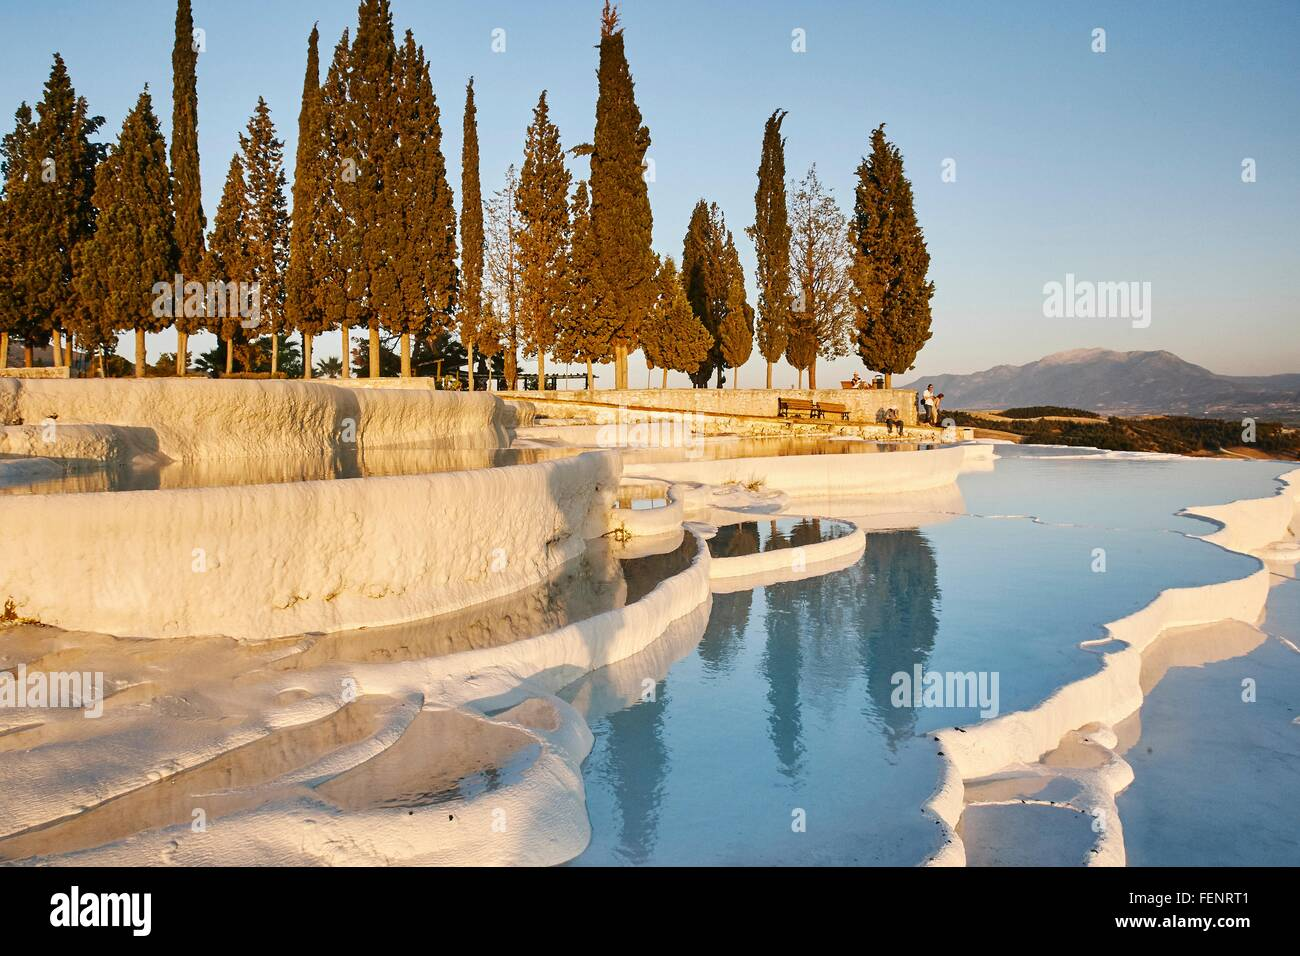 Hot spring terrasses, Pamukkale, Anatolie, Turquie Banque D'Images